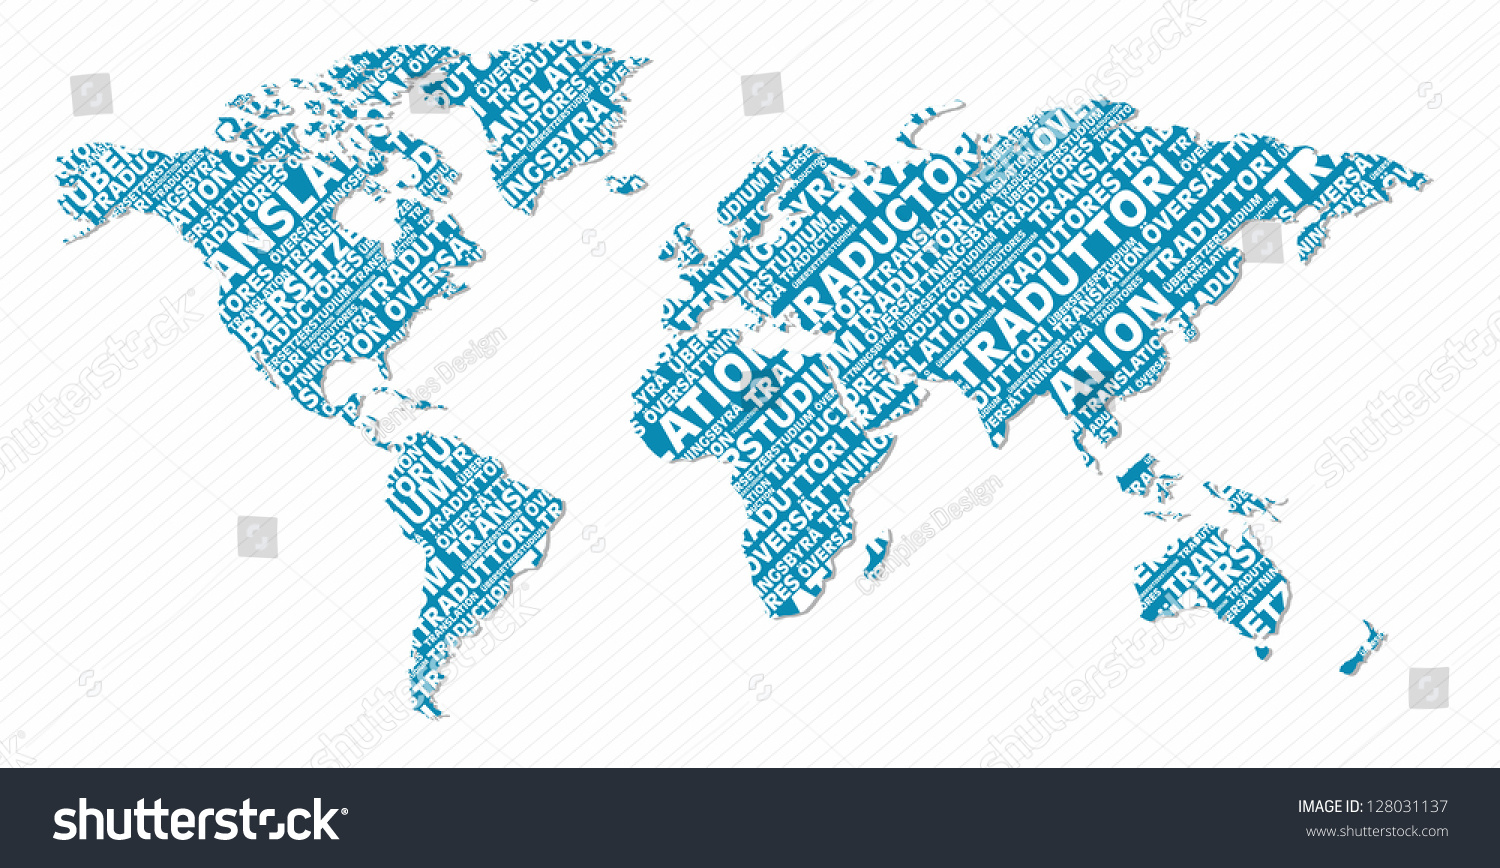 Multilanguage world map text shape vector stock vector 128031137 multi language world map text shape vector file layered for easy manipulation and custom gumiabroncs Image collections